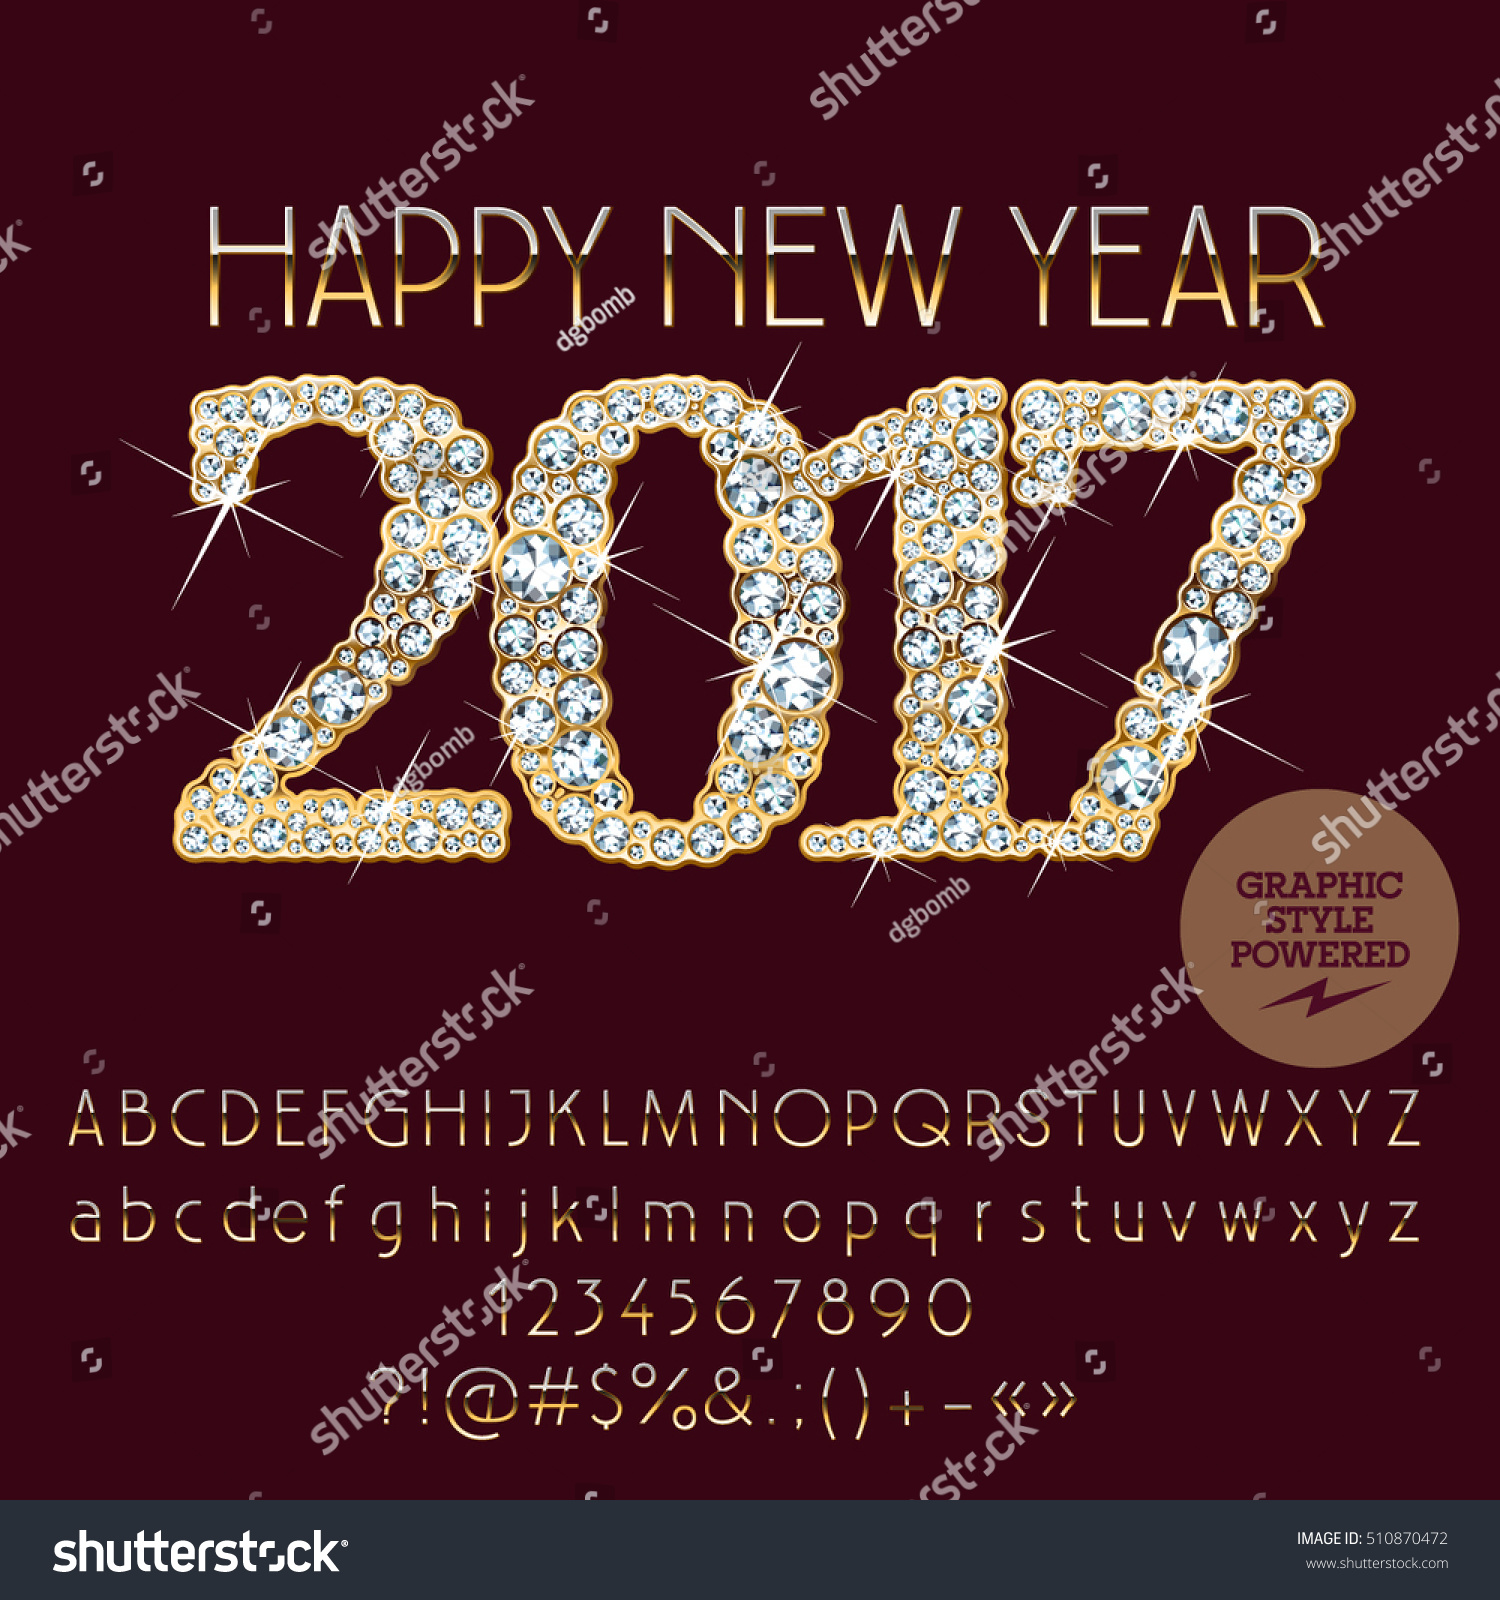 Vector Brilliant Happy New Year 2017 Greeting Card With